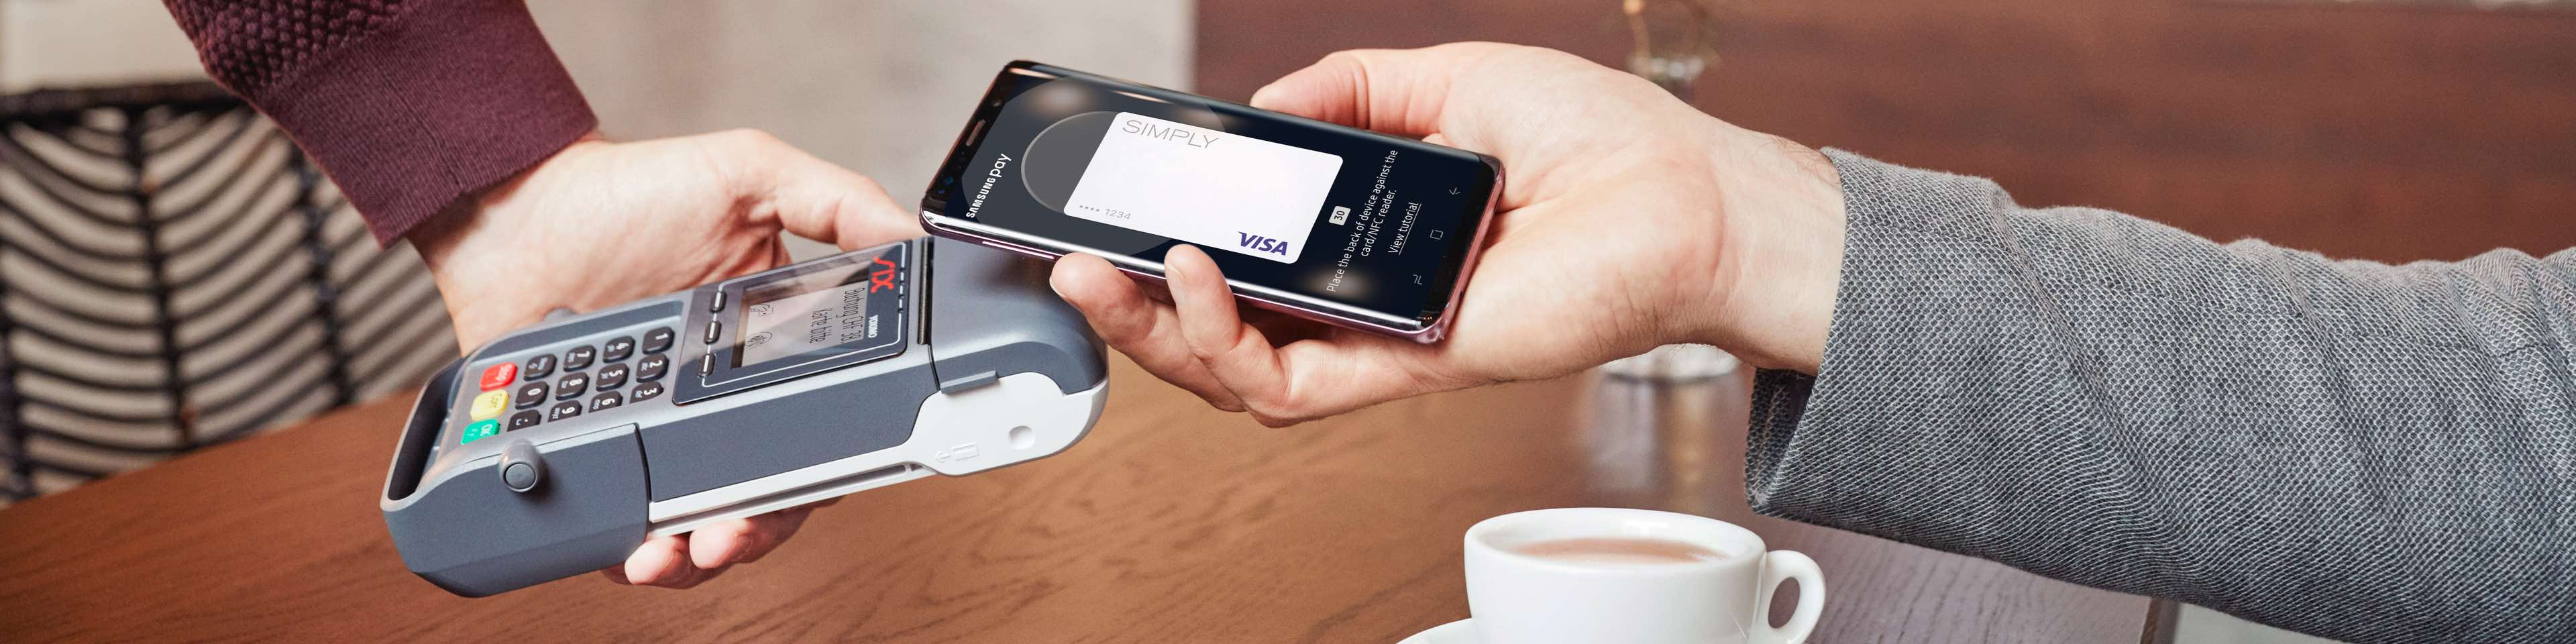 Samsung Pay Zahlsituation